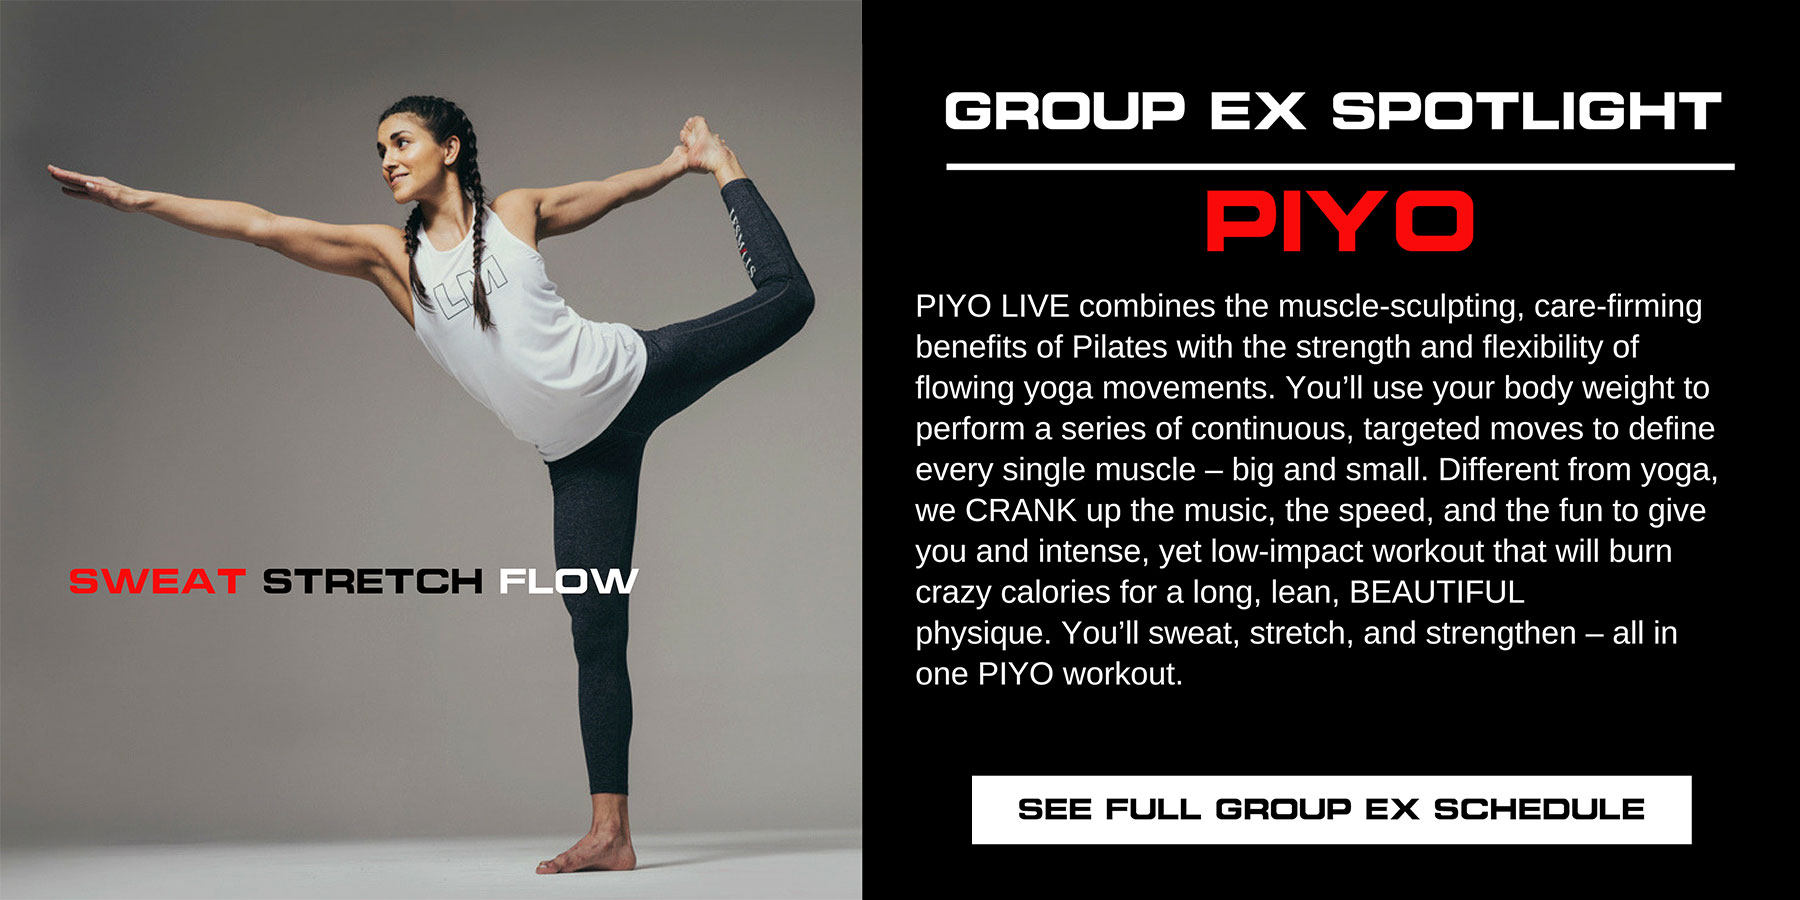 Group Exercise Spotlight